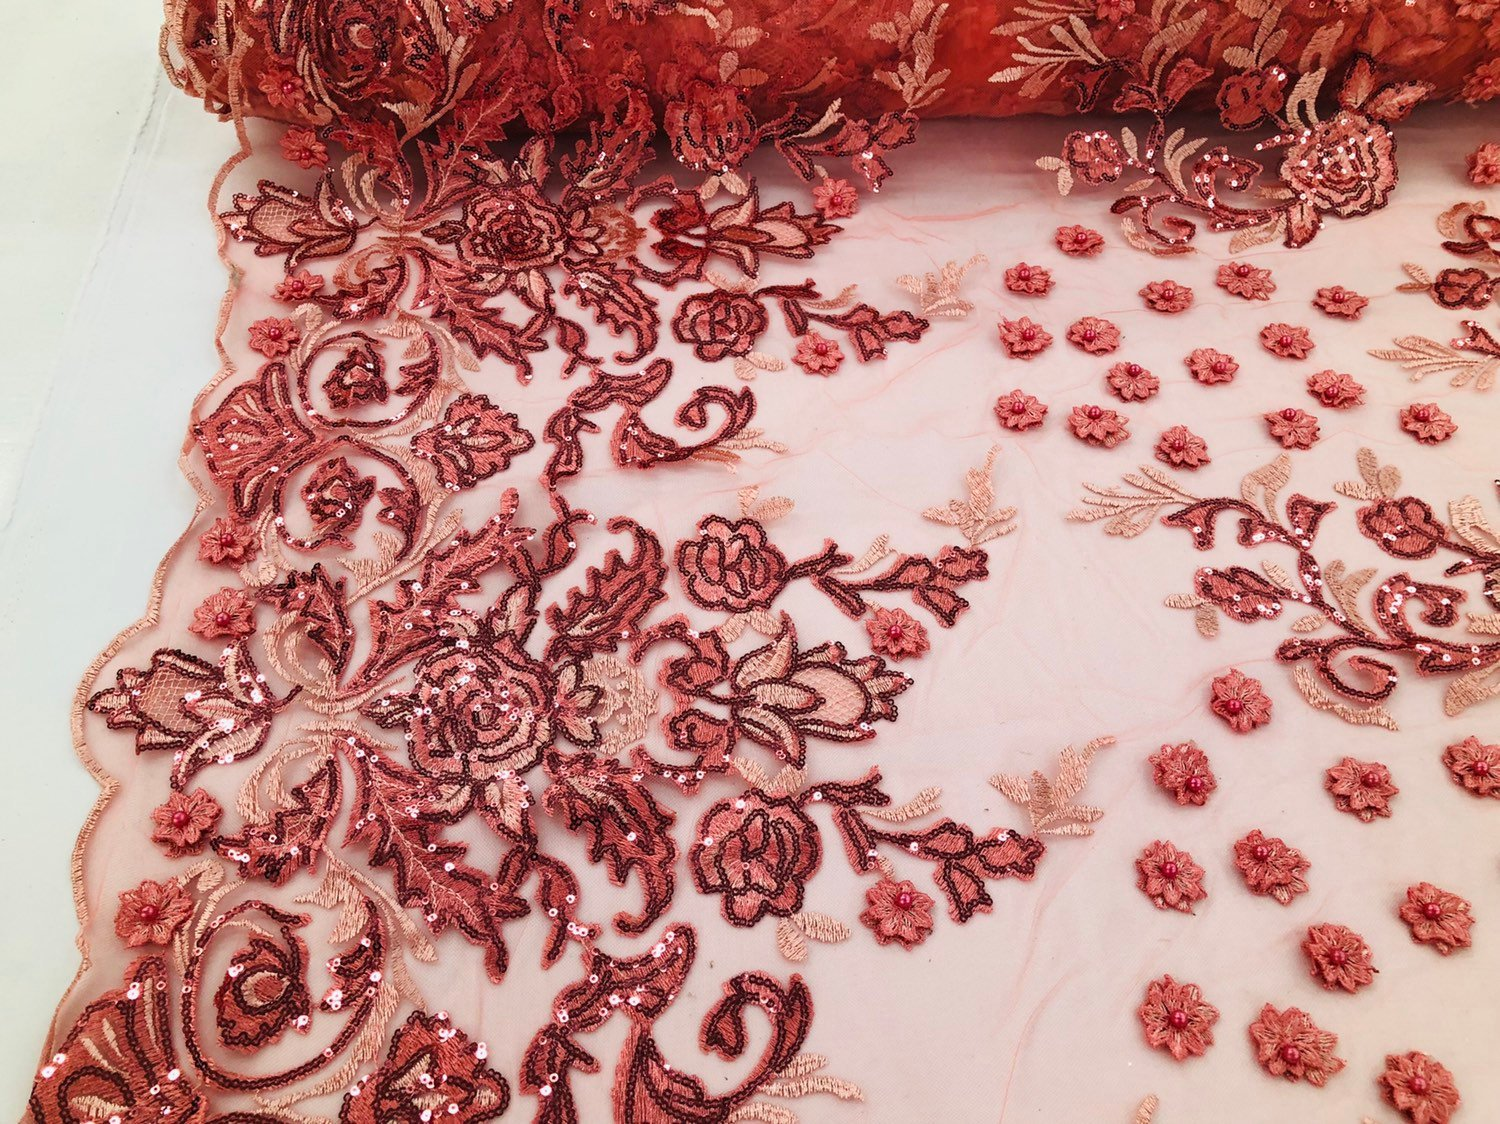 CORAL Lace Fabric - Mini 3D Flower Embroidered On A Mesh Sequins And Beaded Fabric Floral Wedding Bridal Veil Prom-Gown By The Yard - KINGDOM OF FABRICS